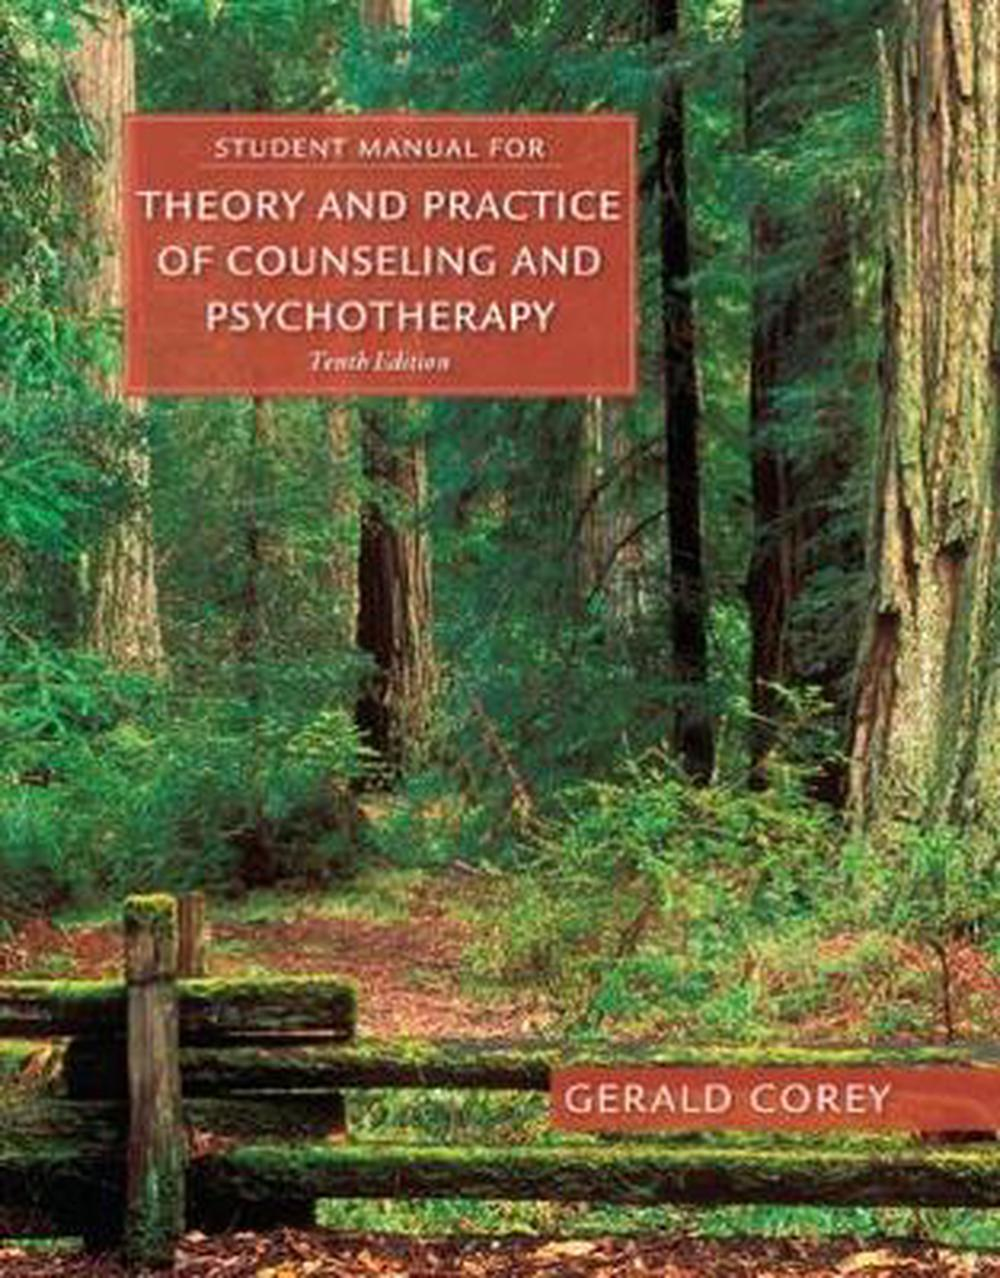 SM Theory & Practice Counseling & Psychotherapy, 10th Edition